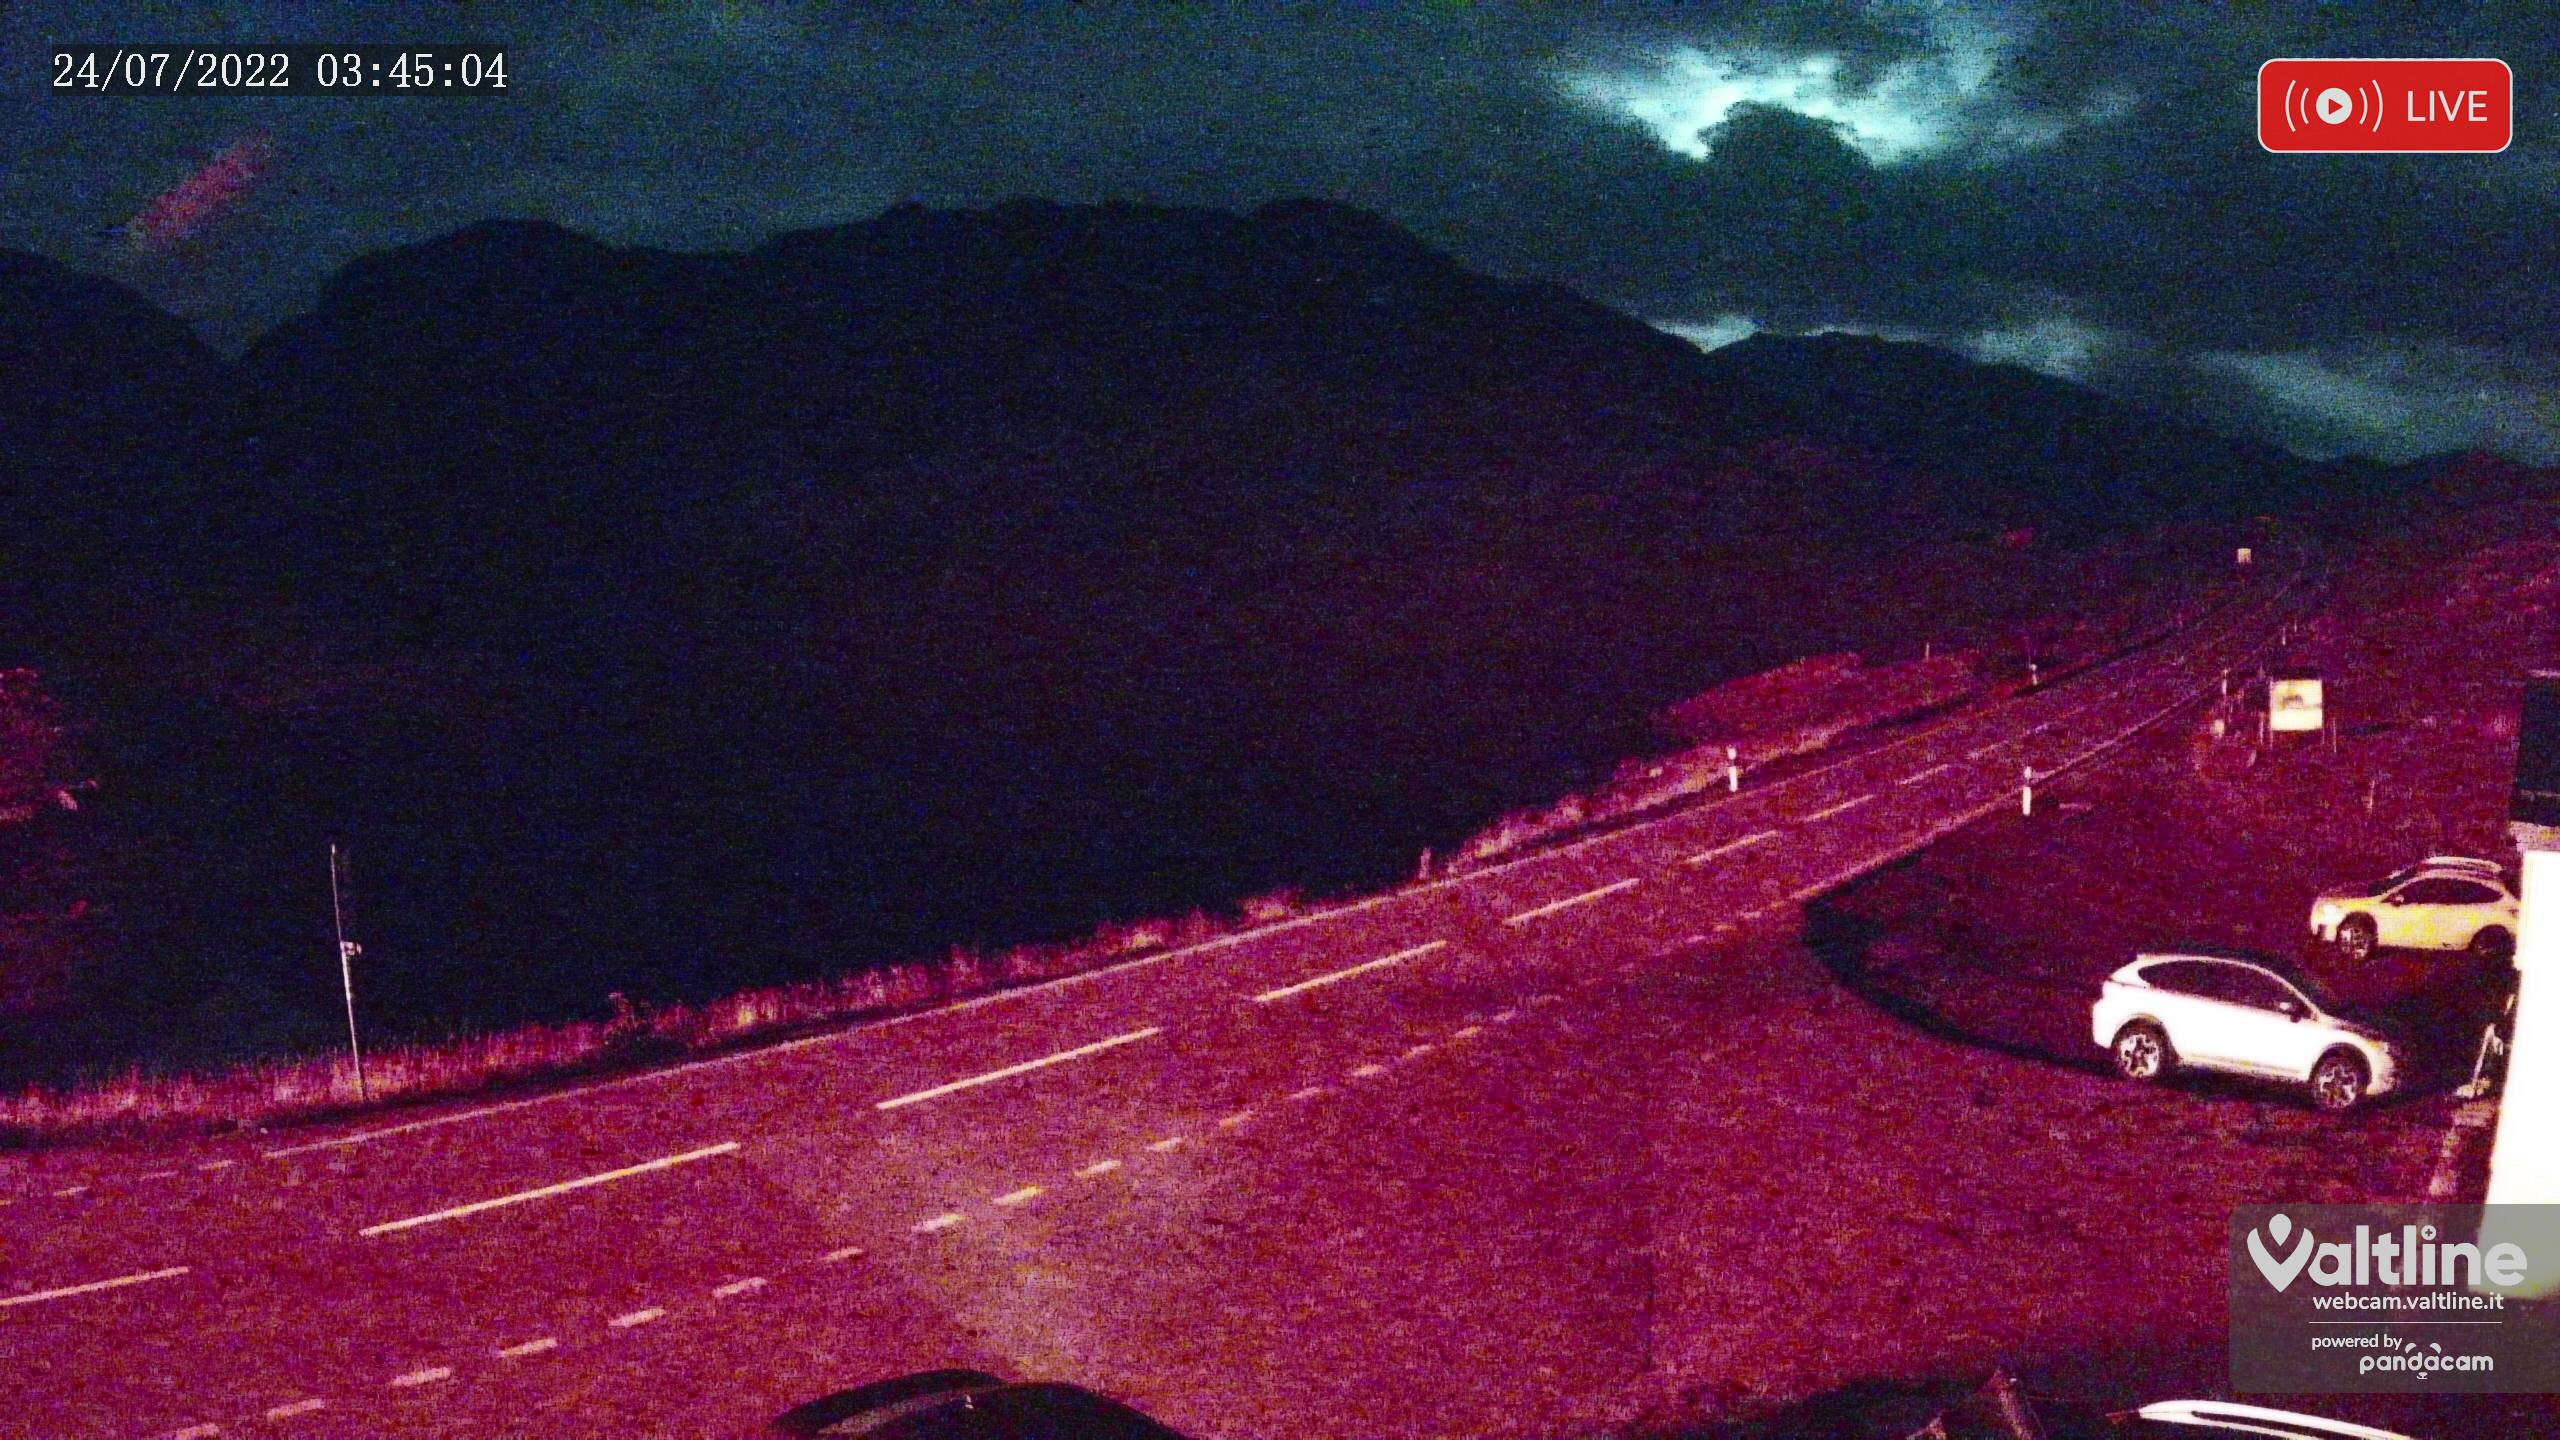 imgproxy.php?url=https://www.webcam.valtline.it/passo-bernina-hd.jpg